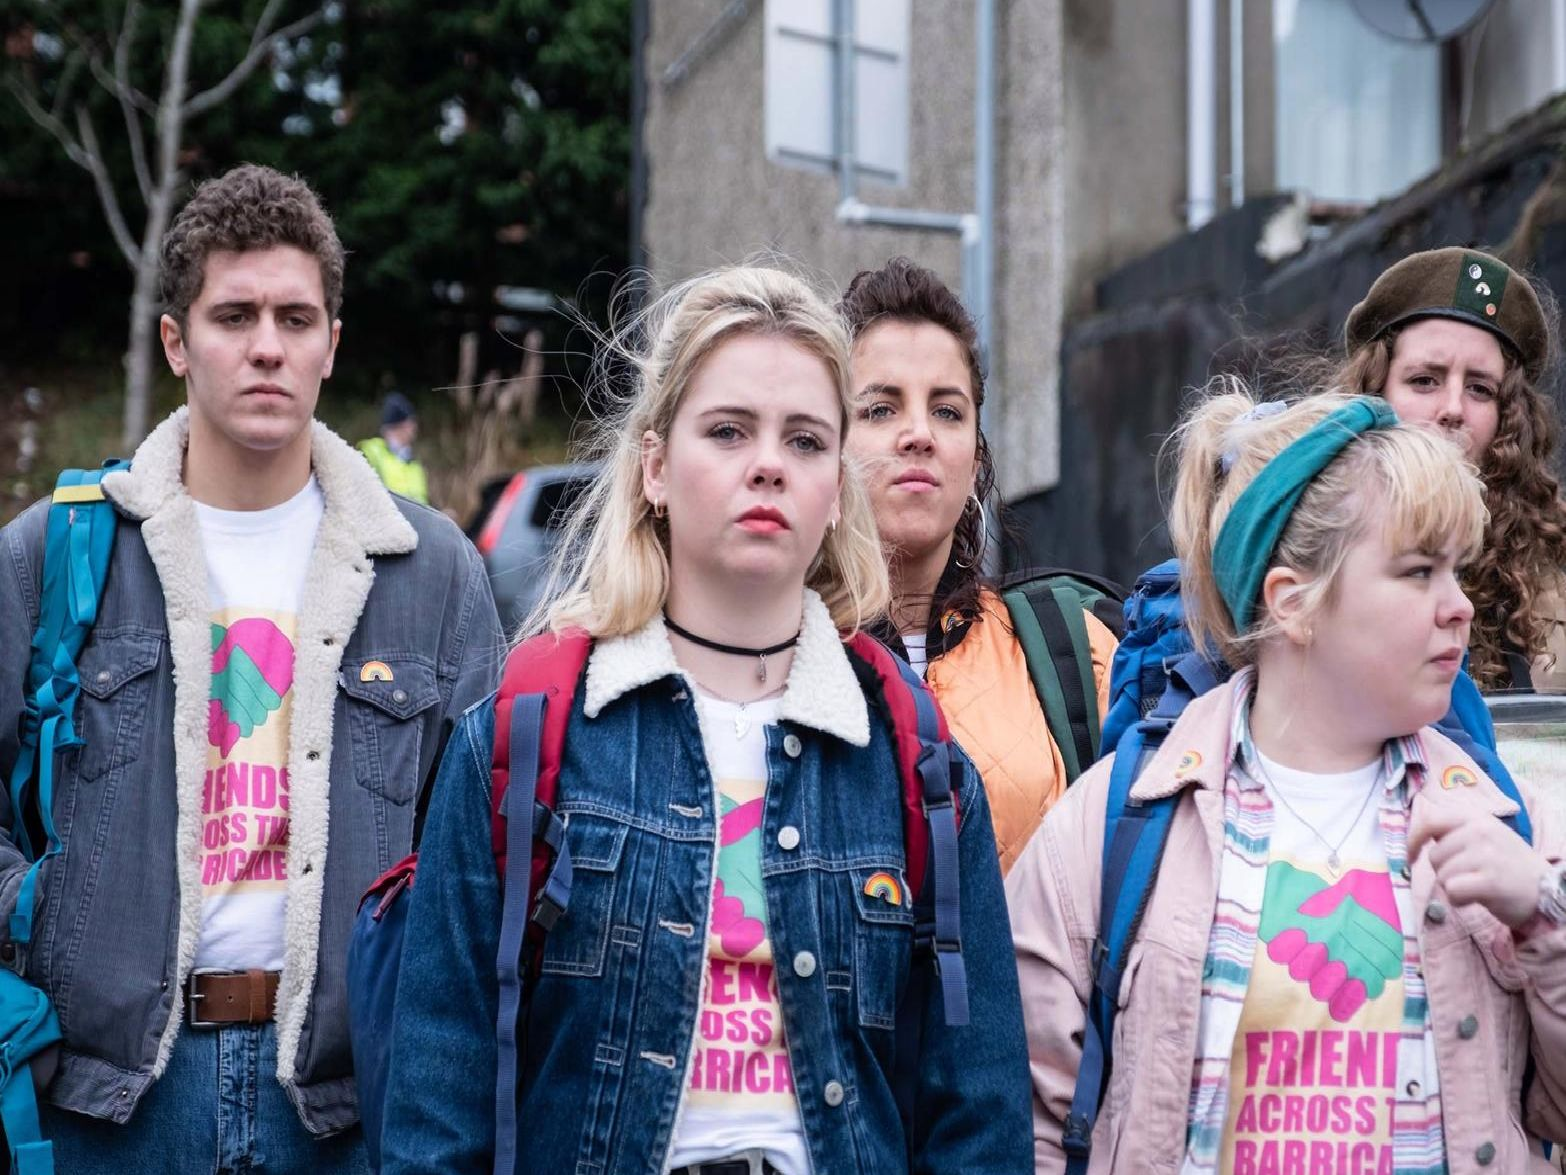 Series two of Derry Girls has proven to be every bit as funny as series one